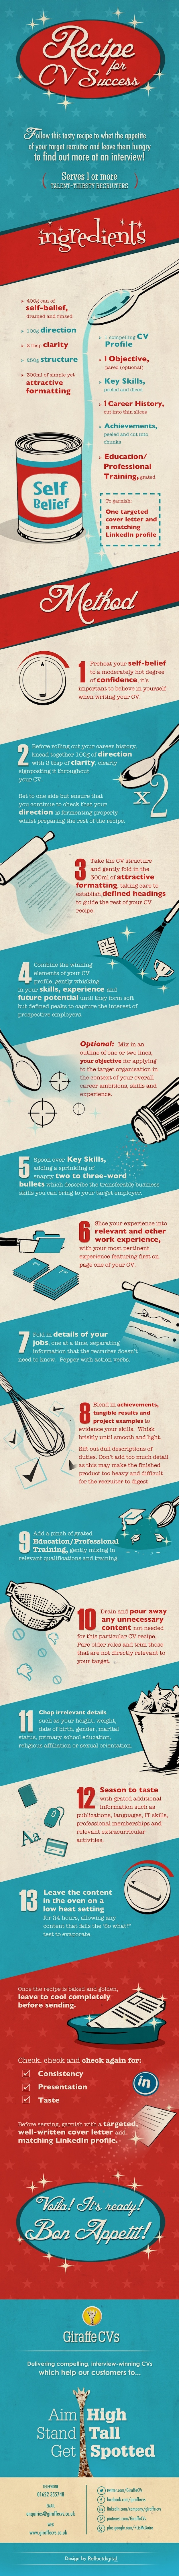 recipe_for_success_infographic